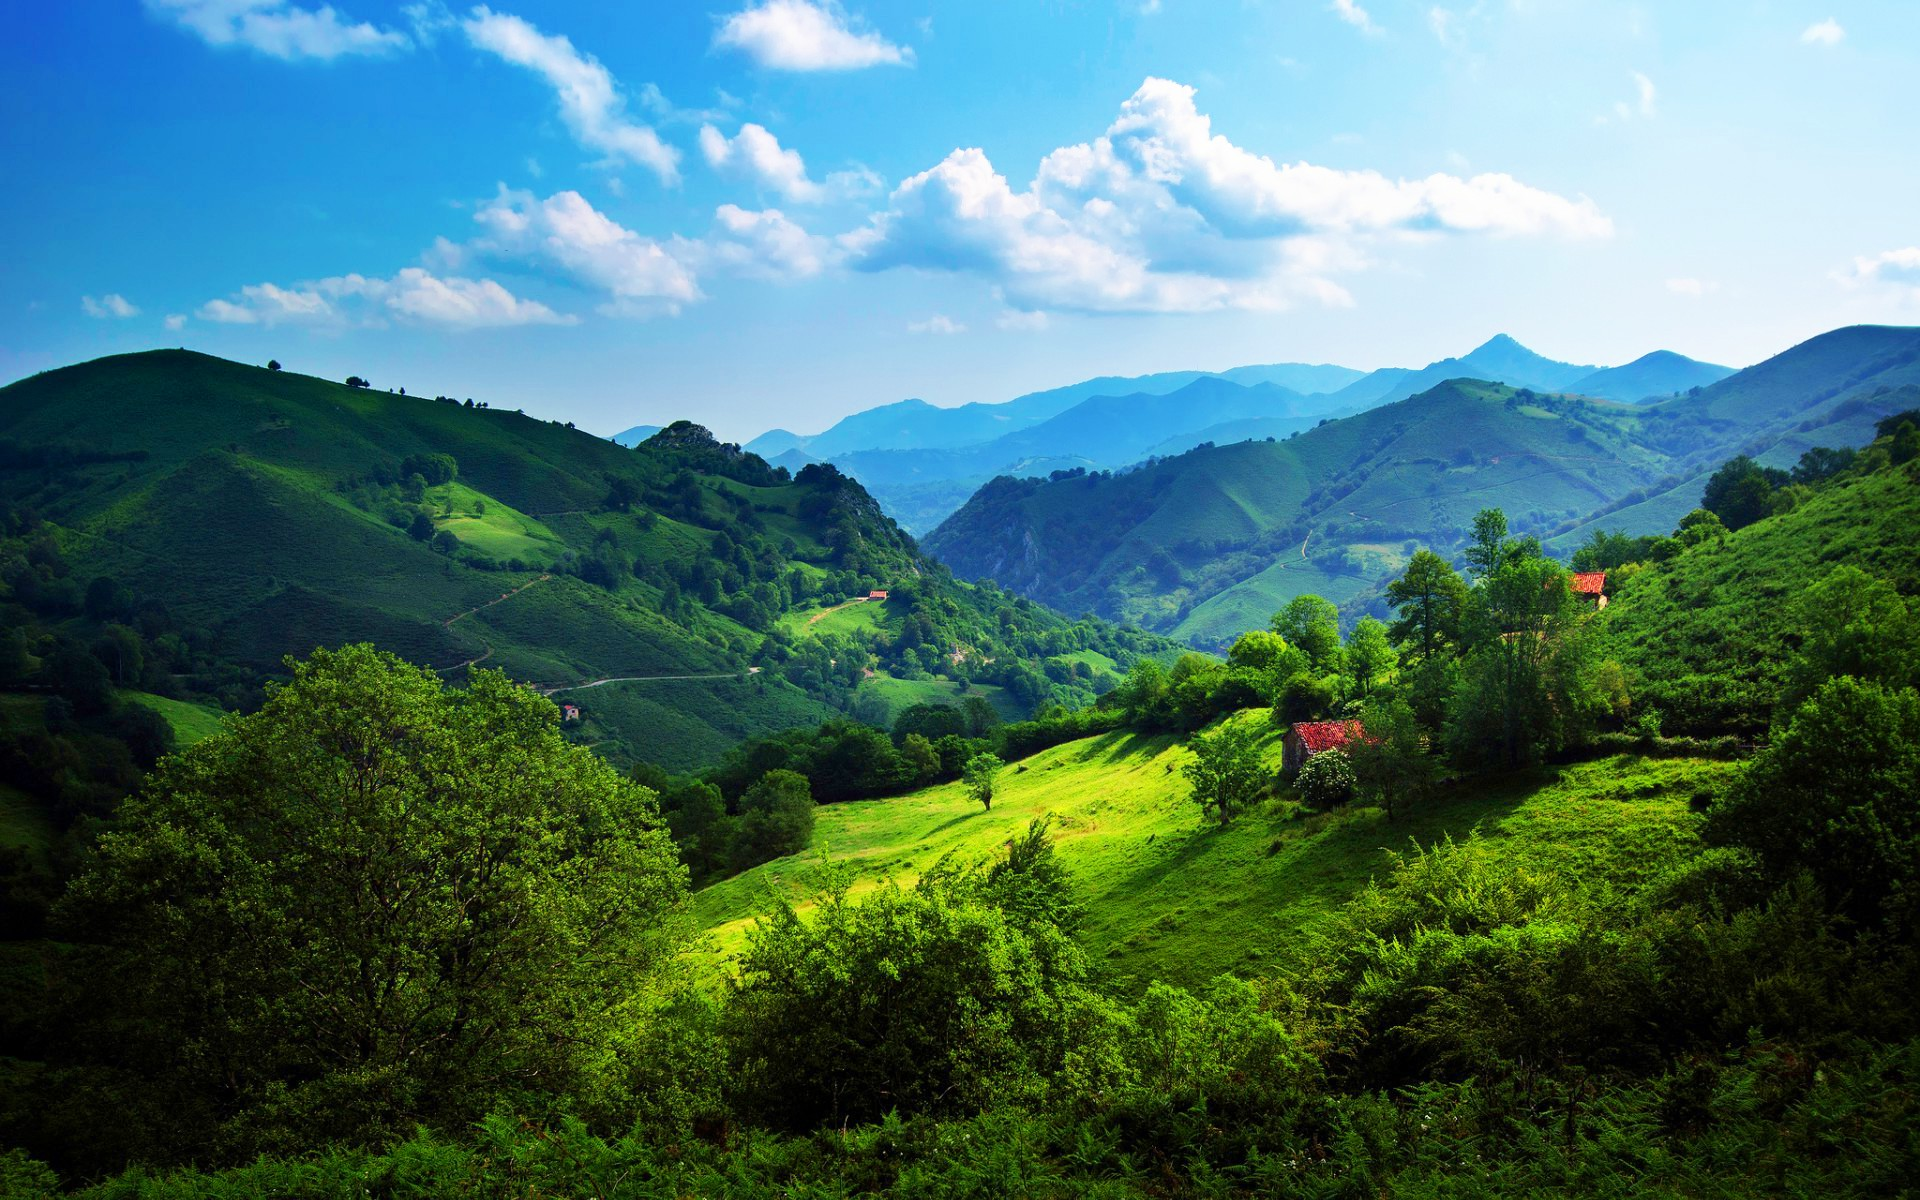 Green Hills Wallpaper